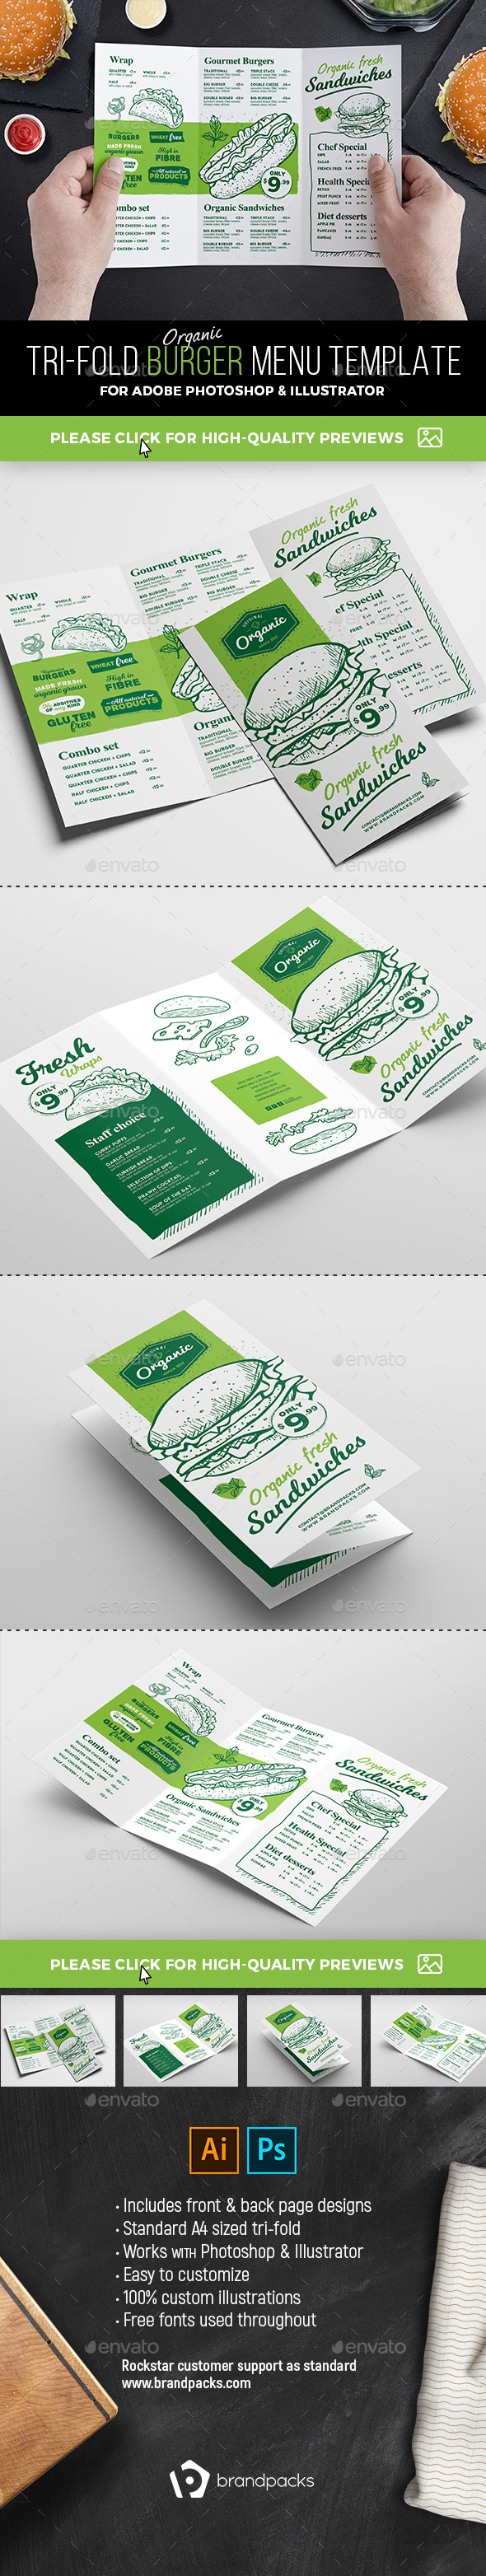 Sandwich shop menu templates free for Sandwich shop menu template